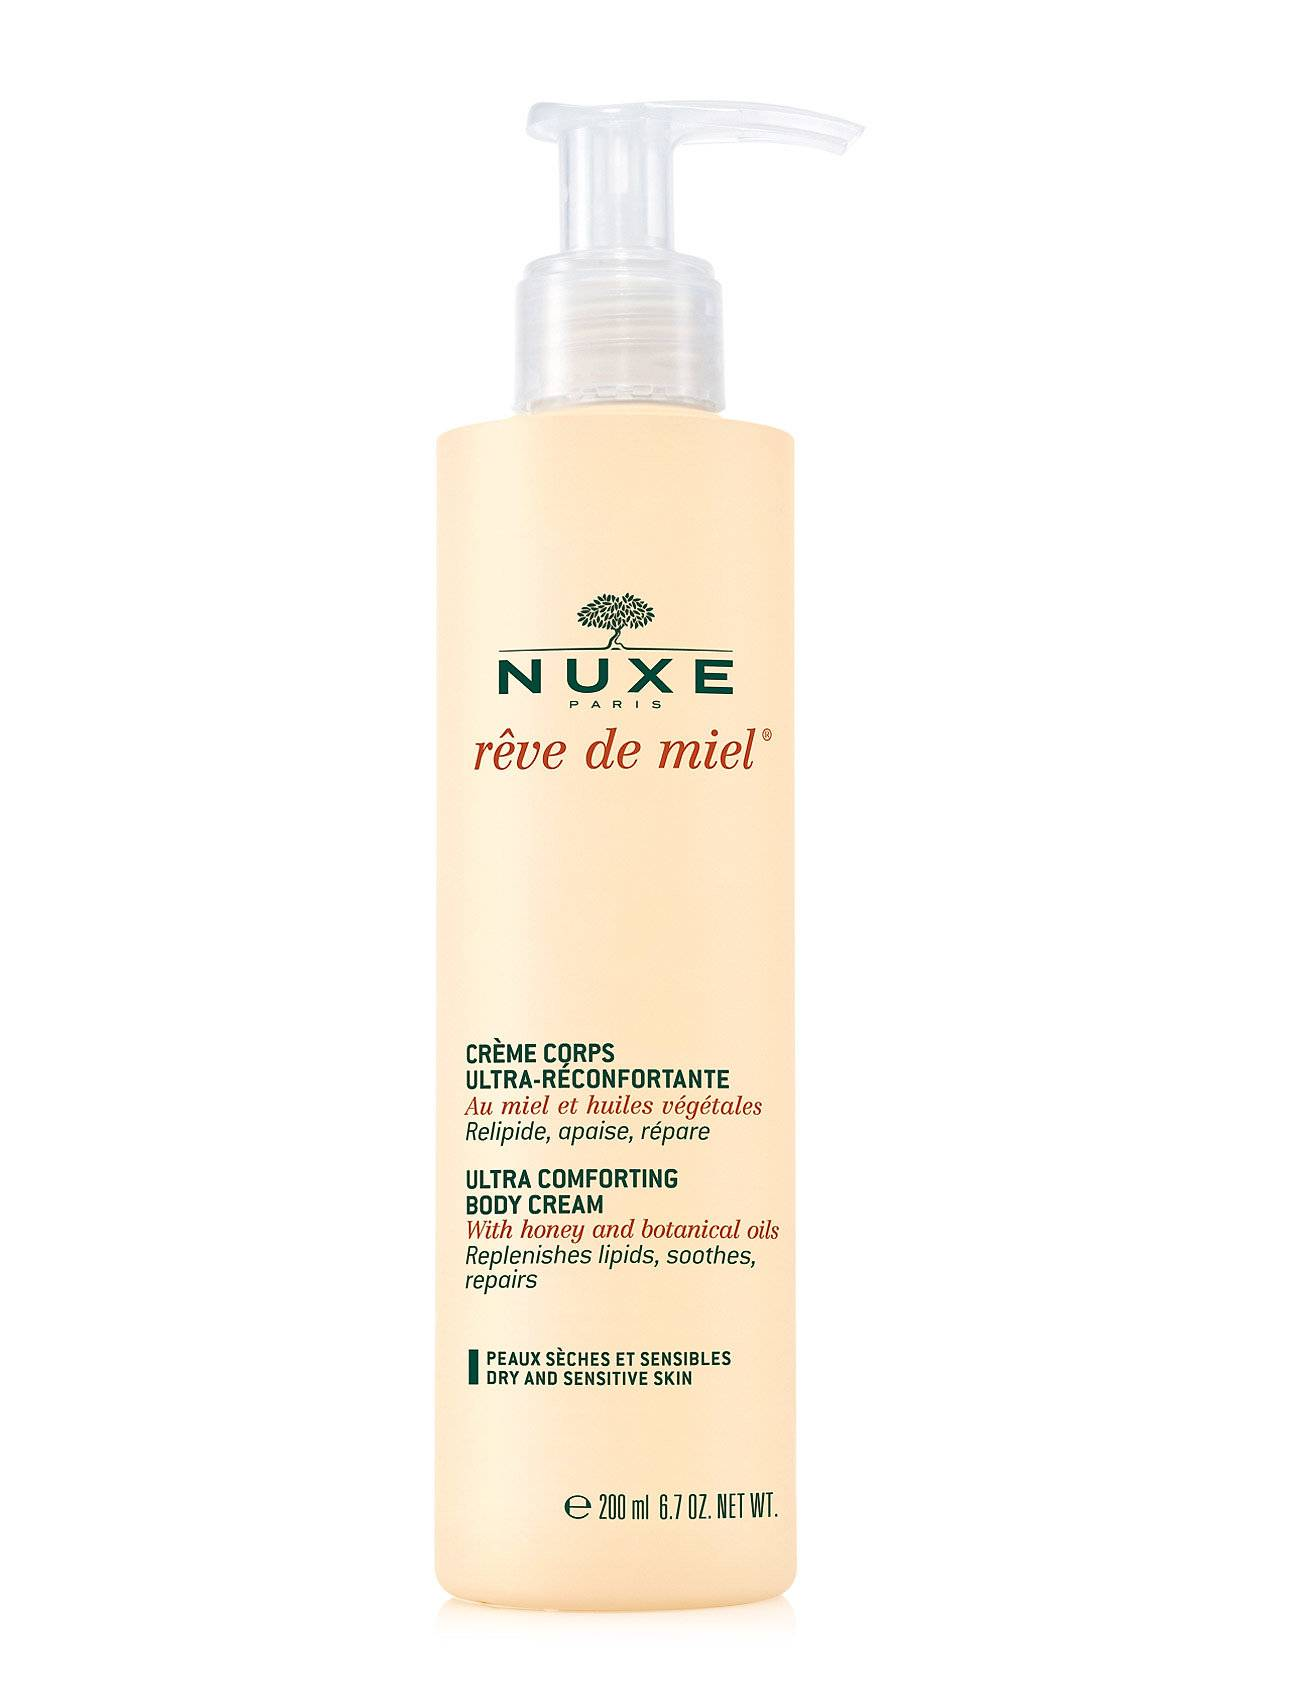 NUXE Creme Corps Ultra-Reconfortante